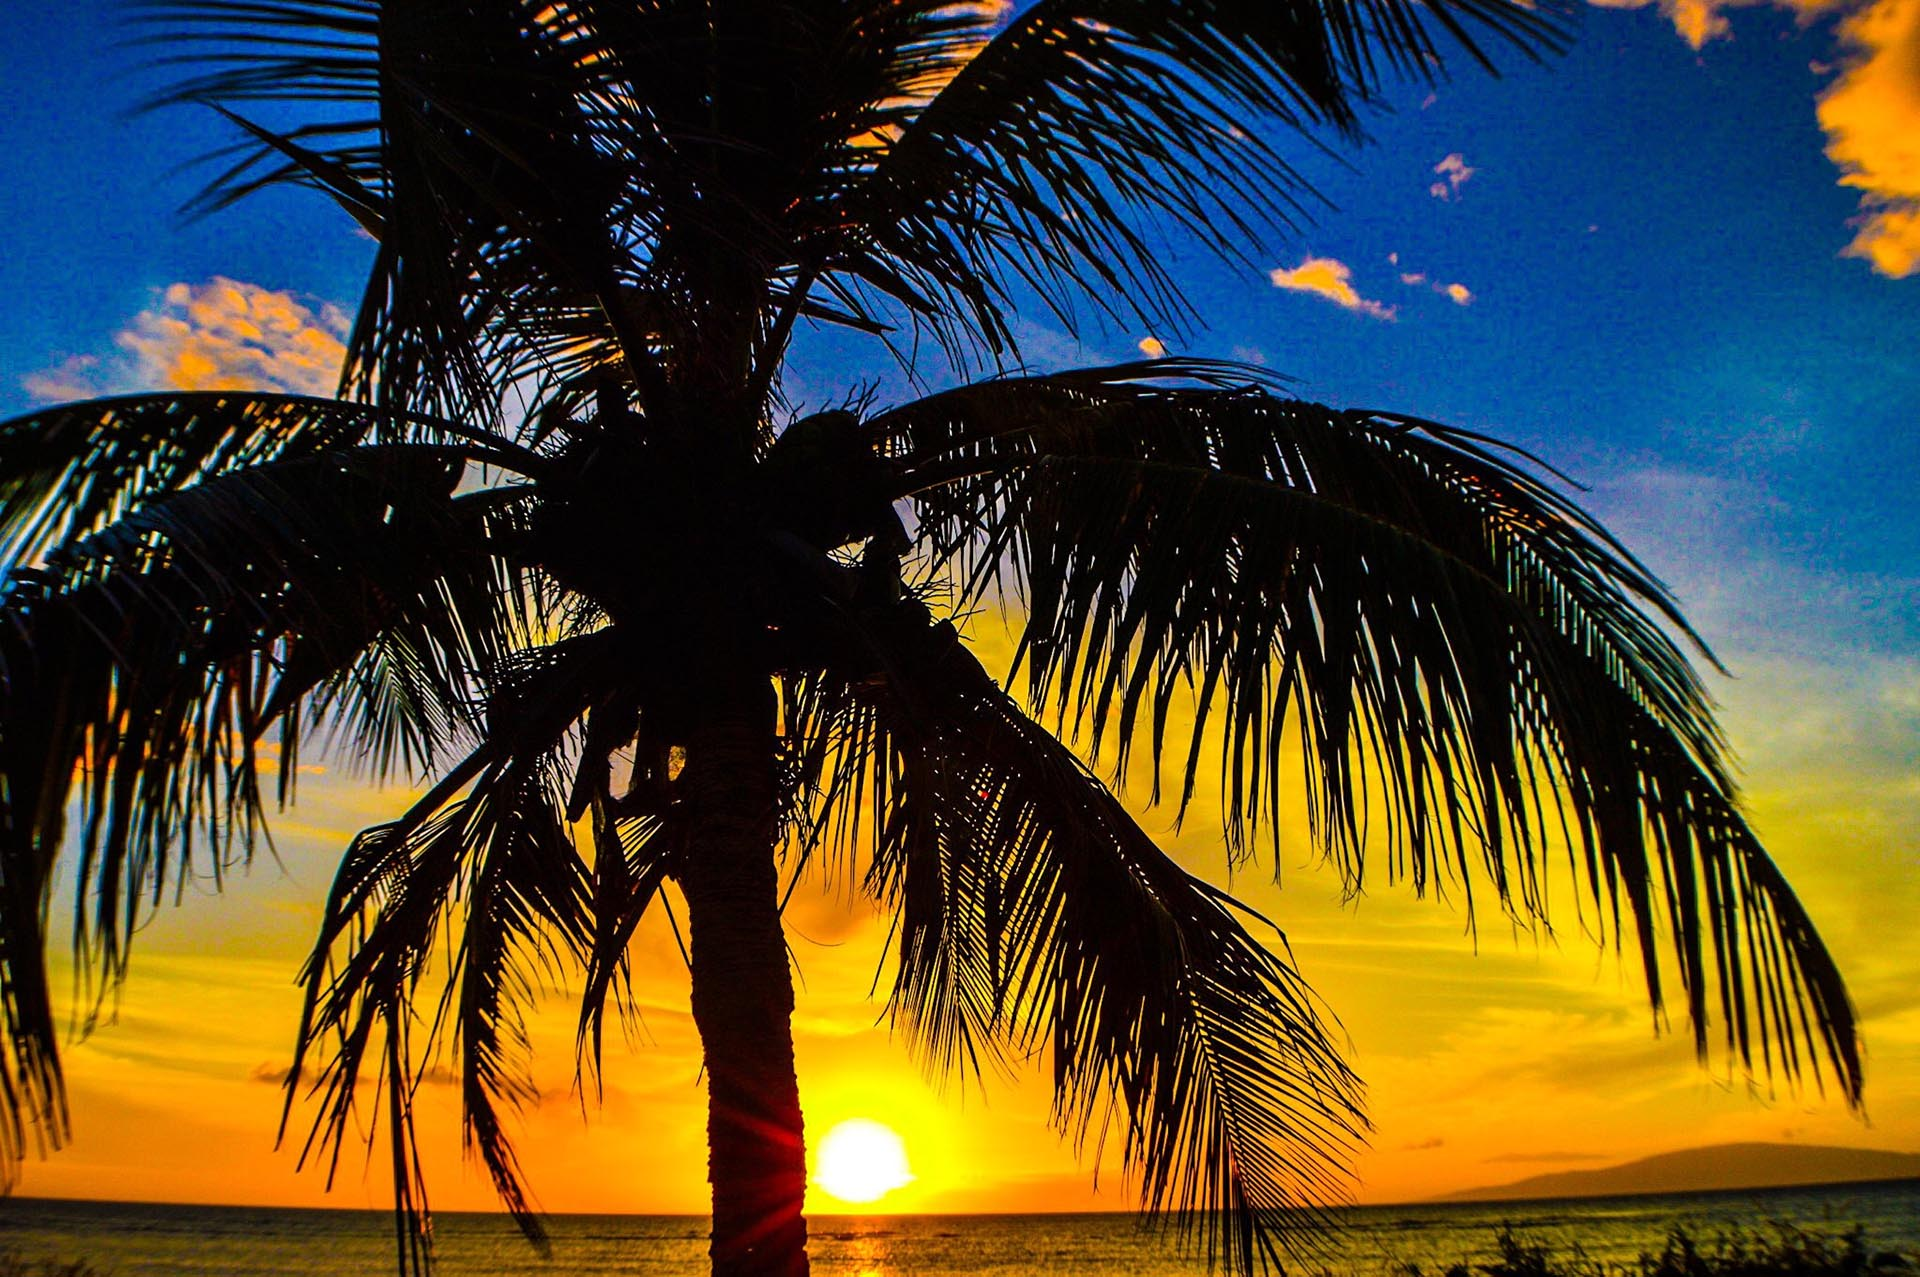 Blue Anime Wallpaper 50 Palm Trees Sunset Wallpapers Hd High Quality Download